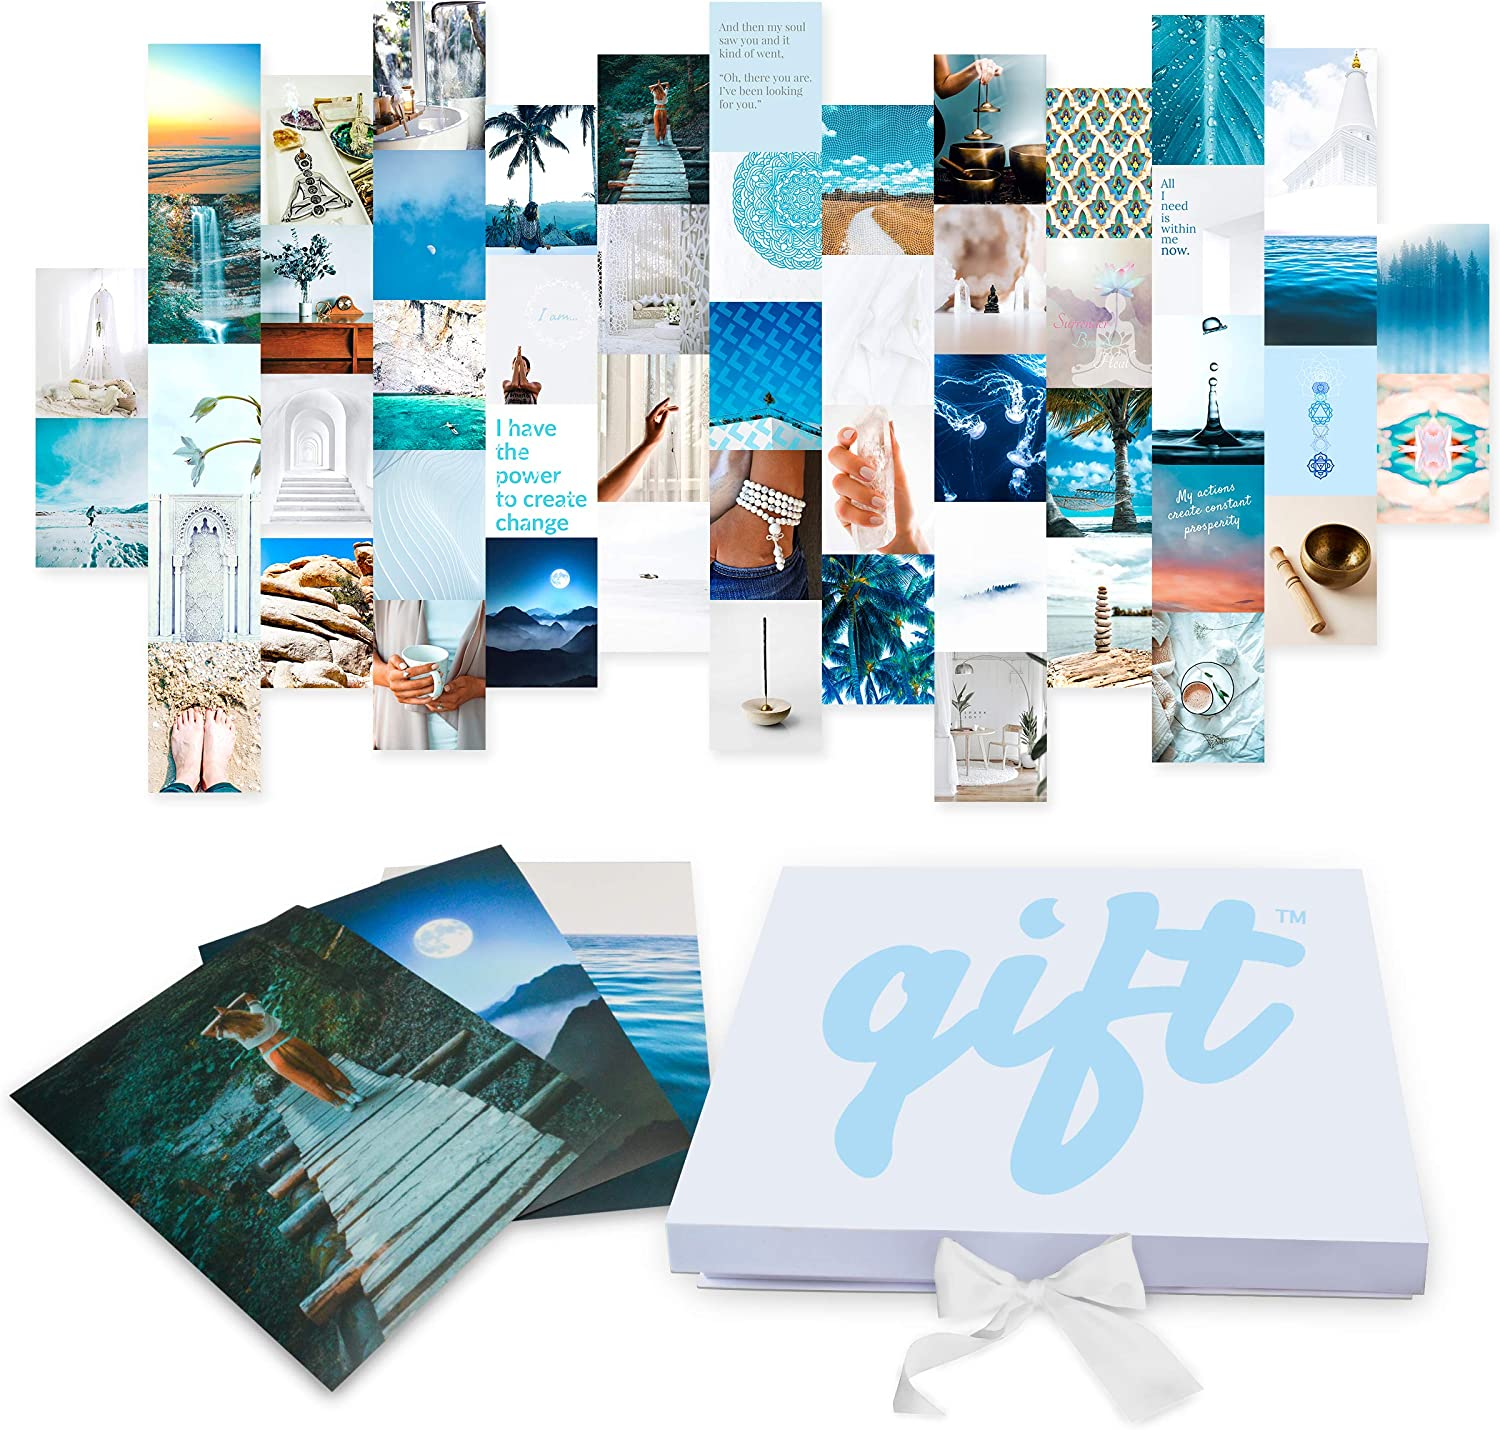 UNLIMITED Display Options | Blue & White Meditation Yoga Wall Decor Set | 53 LARGE Unframed Prints | Collage Kit for Bedroom Living Room Spa or Office | Inspirational Bohemian Pictures | Mindful Motivational Wall Art | Aesthetic Posters | Turquoise Teal & Navy Gifts for Women